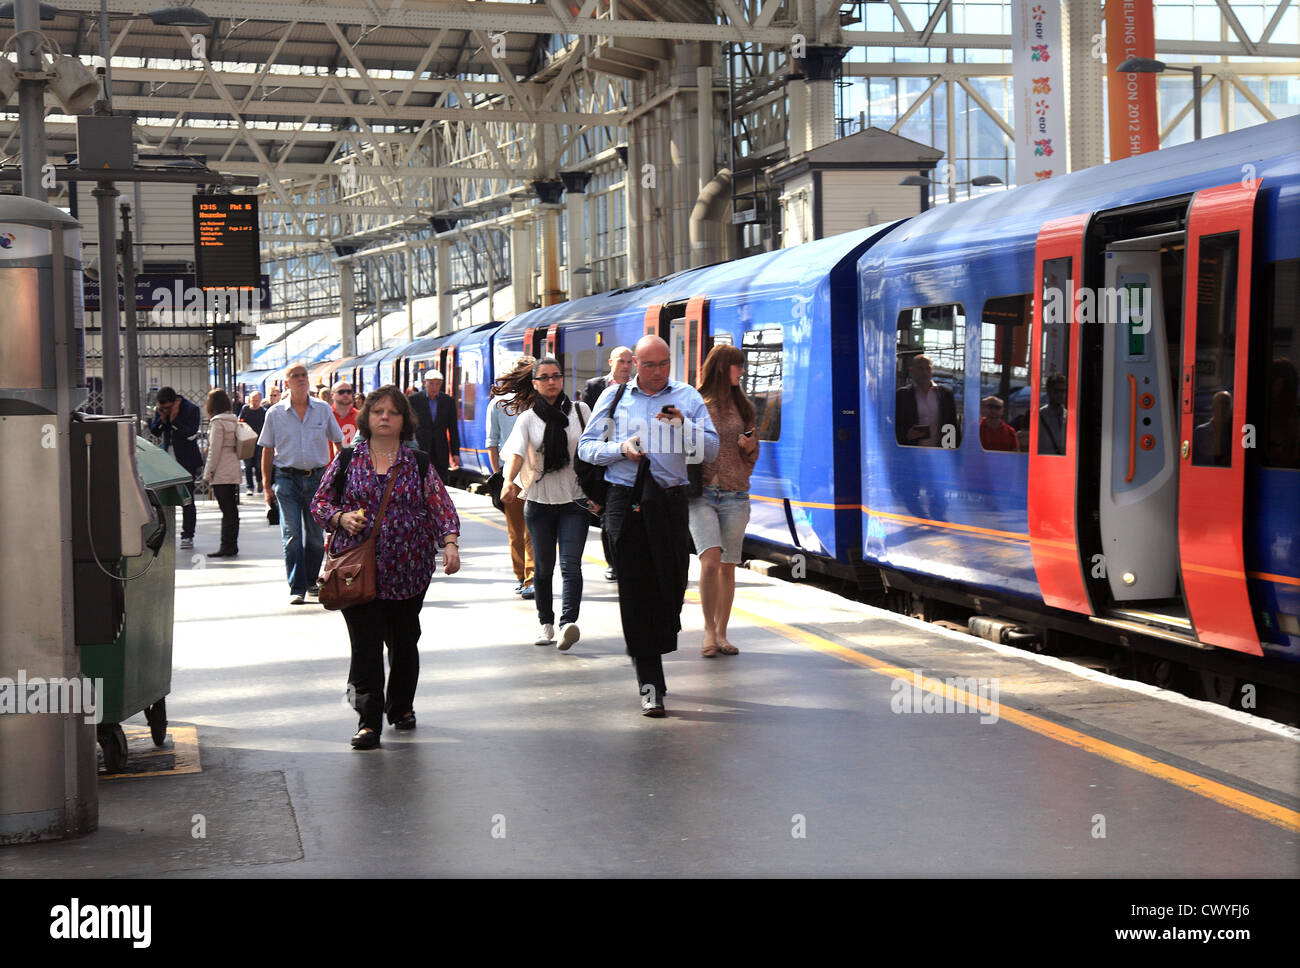 Commuters arriving at Waterloo Station platform in London UK. - Stock Image